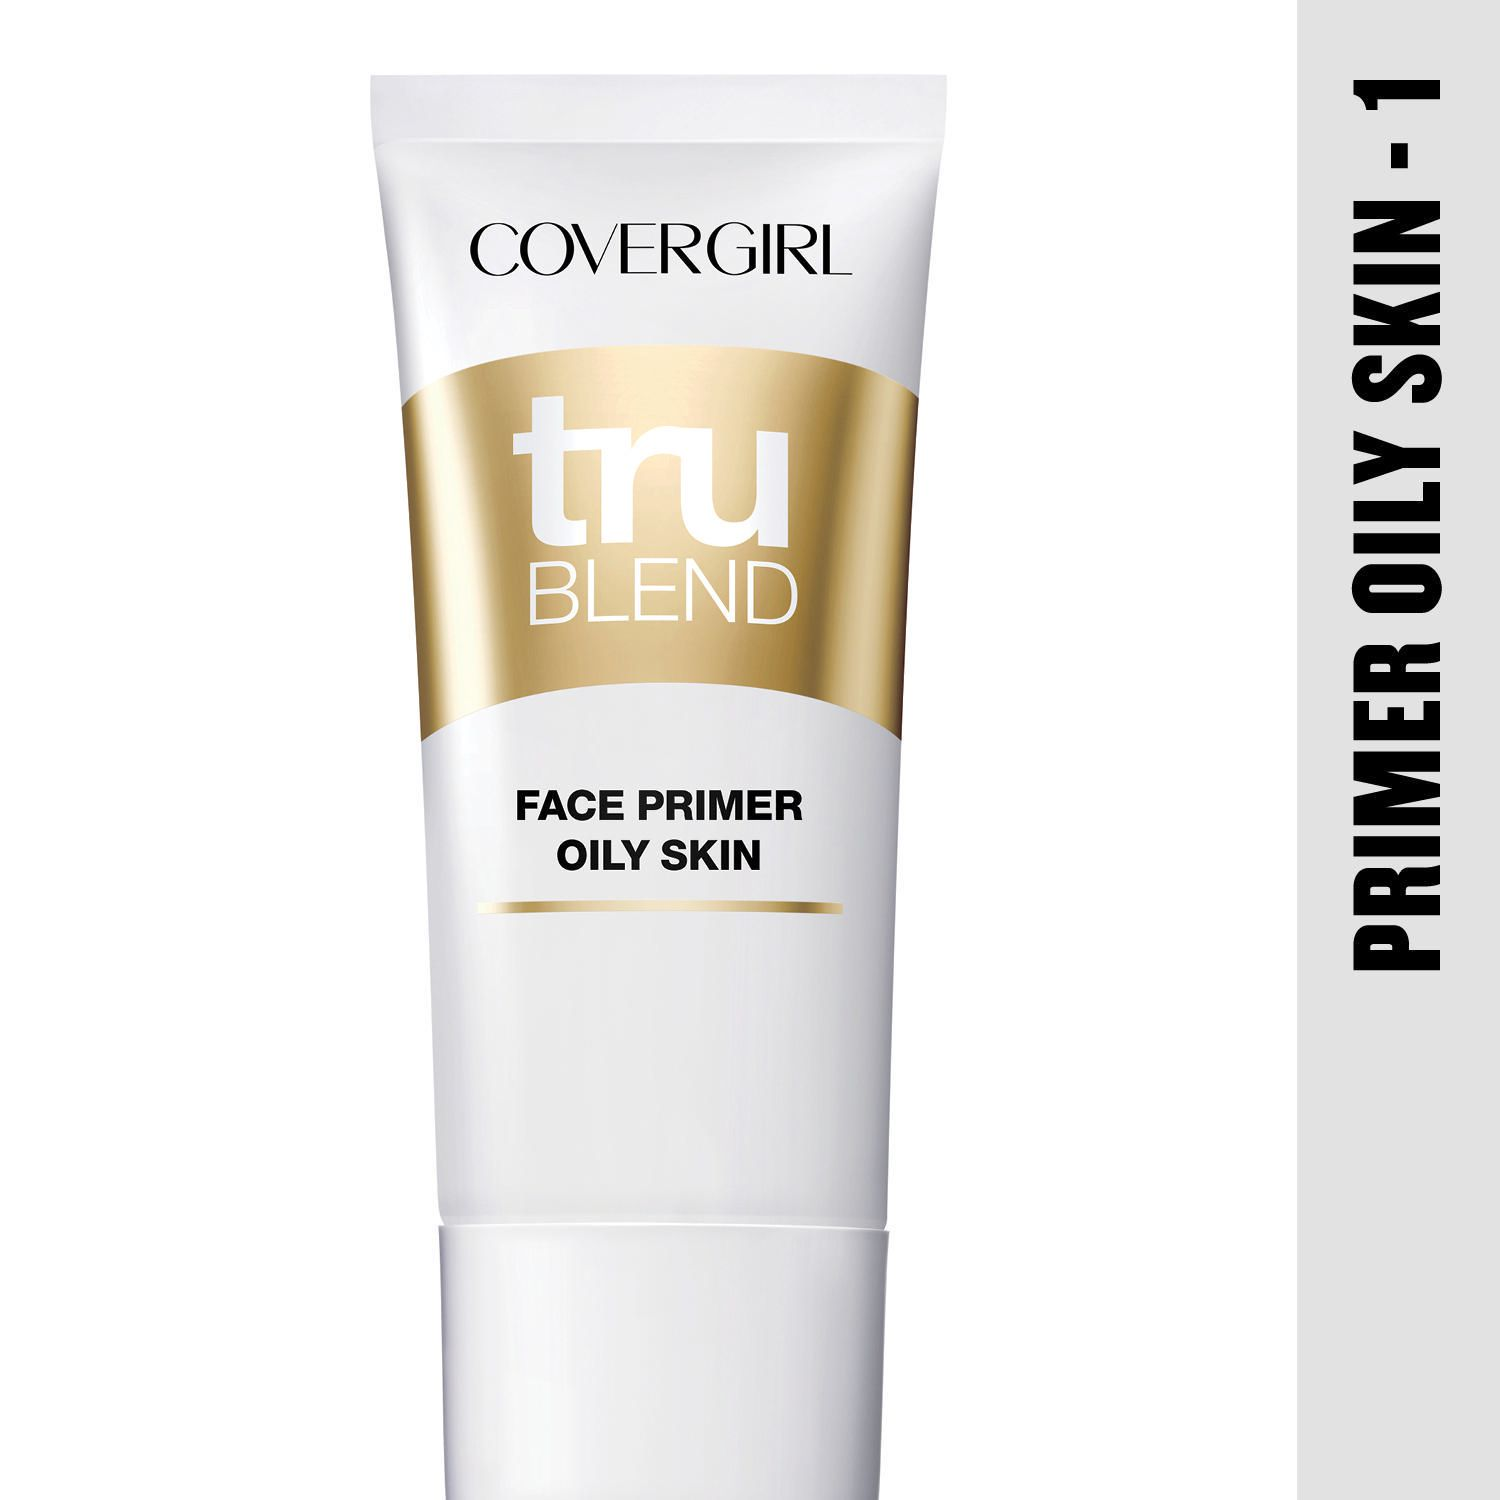 how to use face primer in hindi